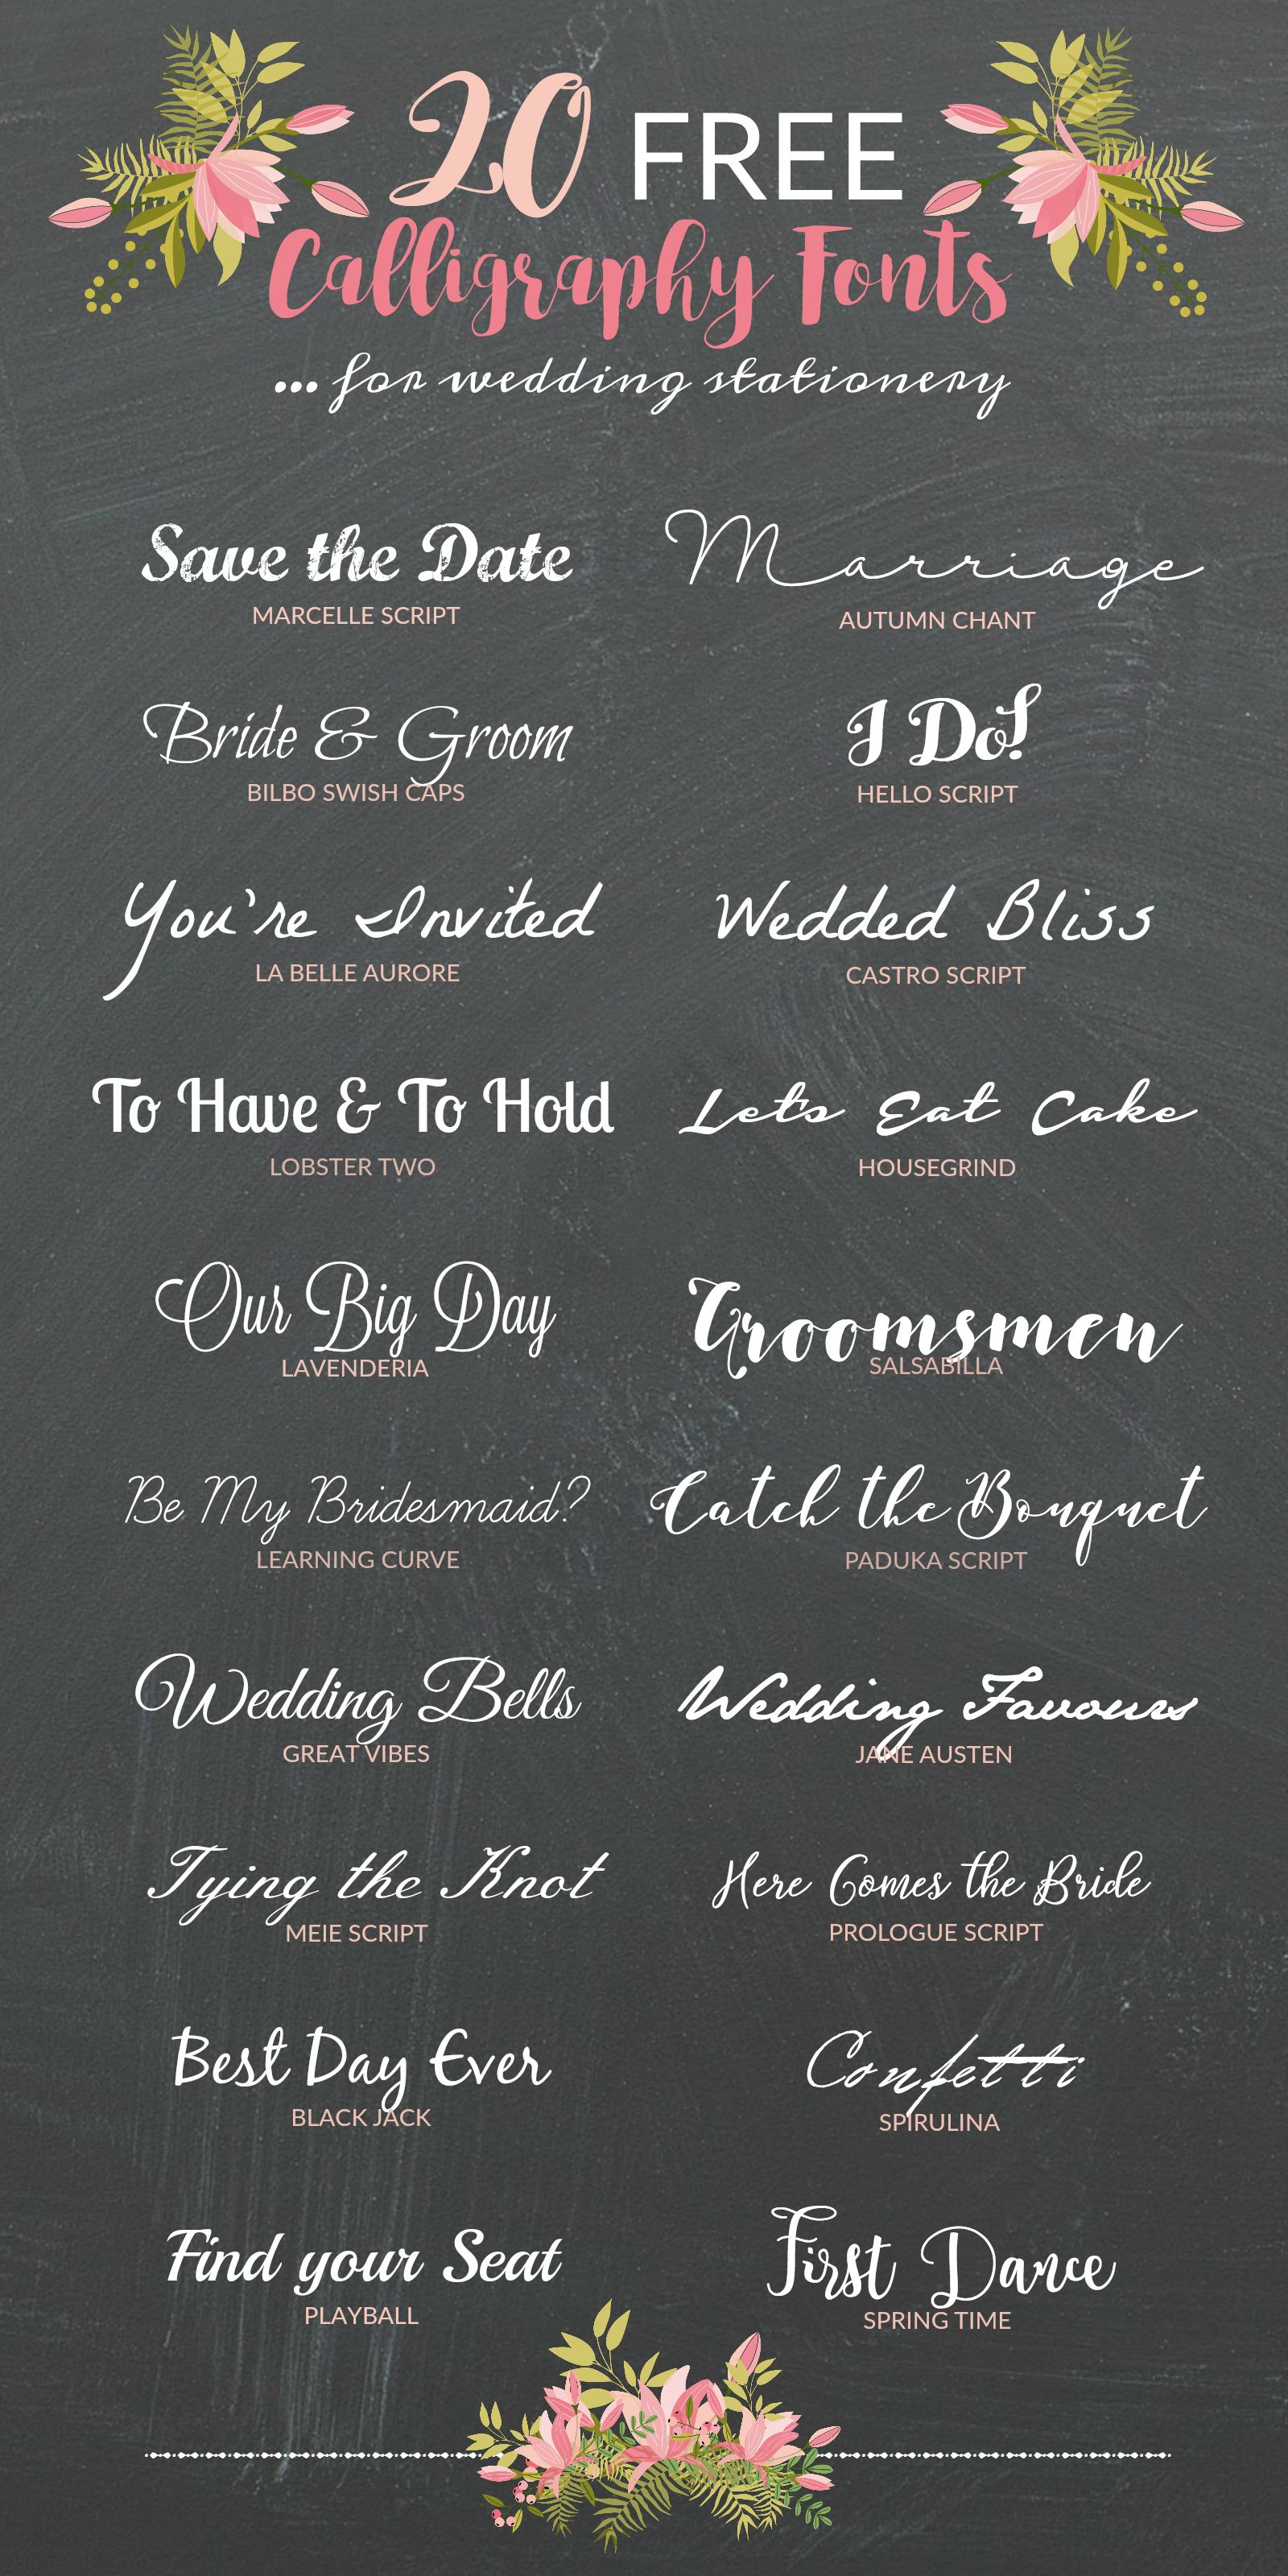 Free Calligraphy Fonts For Drop Dead Gorgeous Wedding Stationery